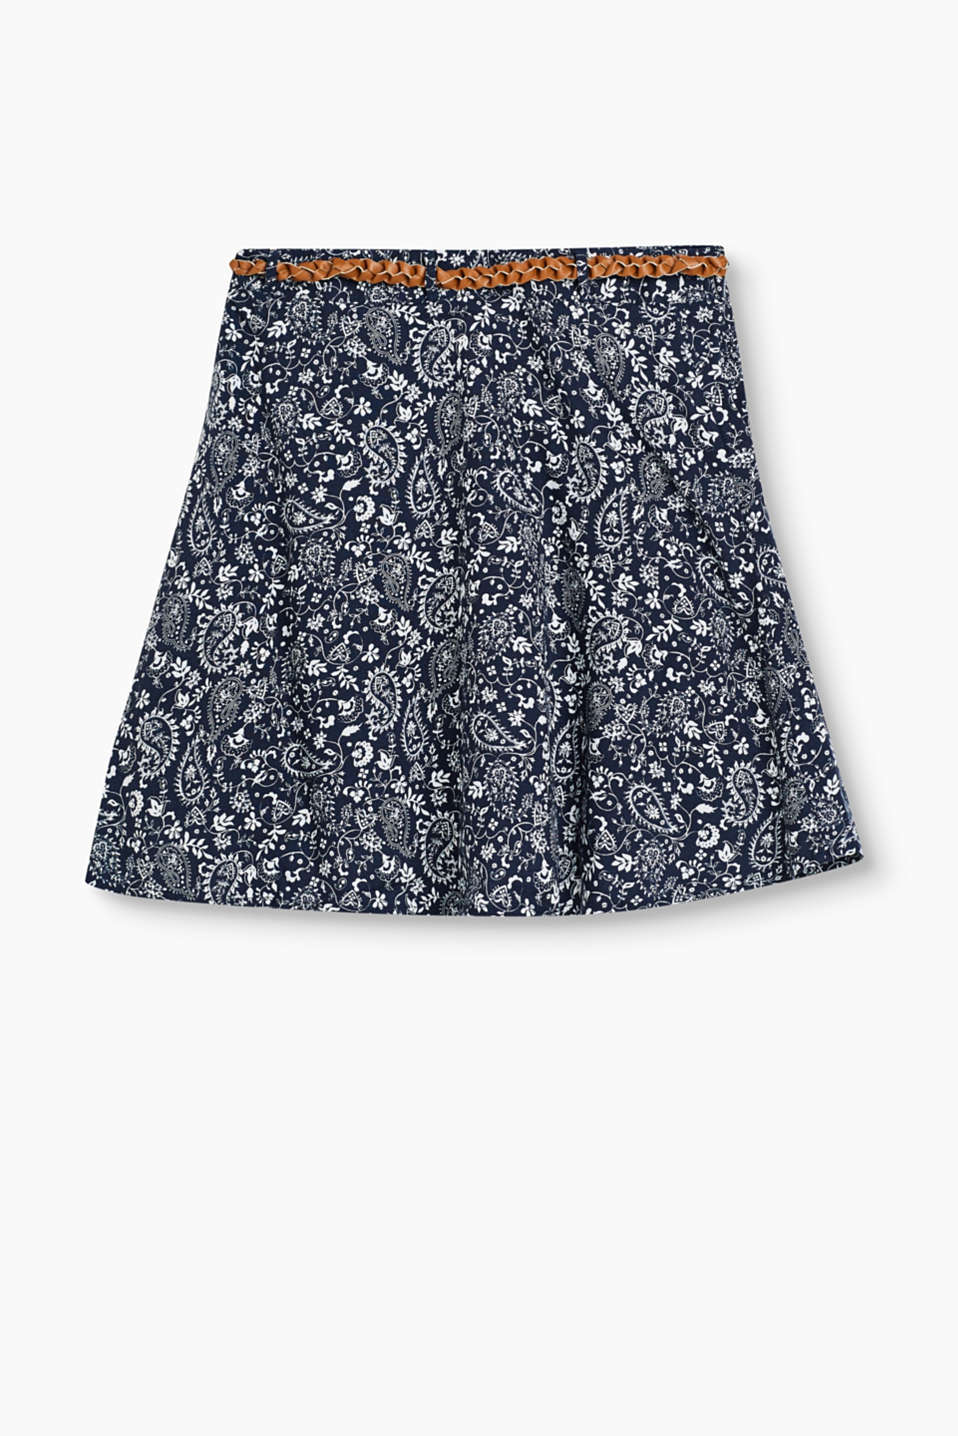 Flared skirt in delicate, skin-friendly fabric with a paisley pattern